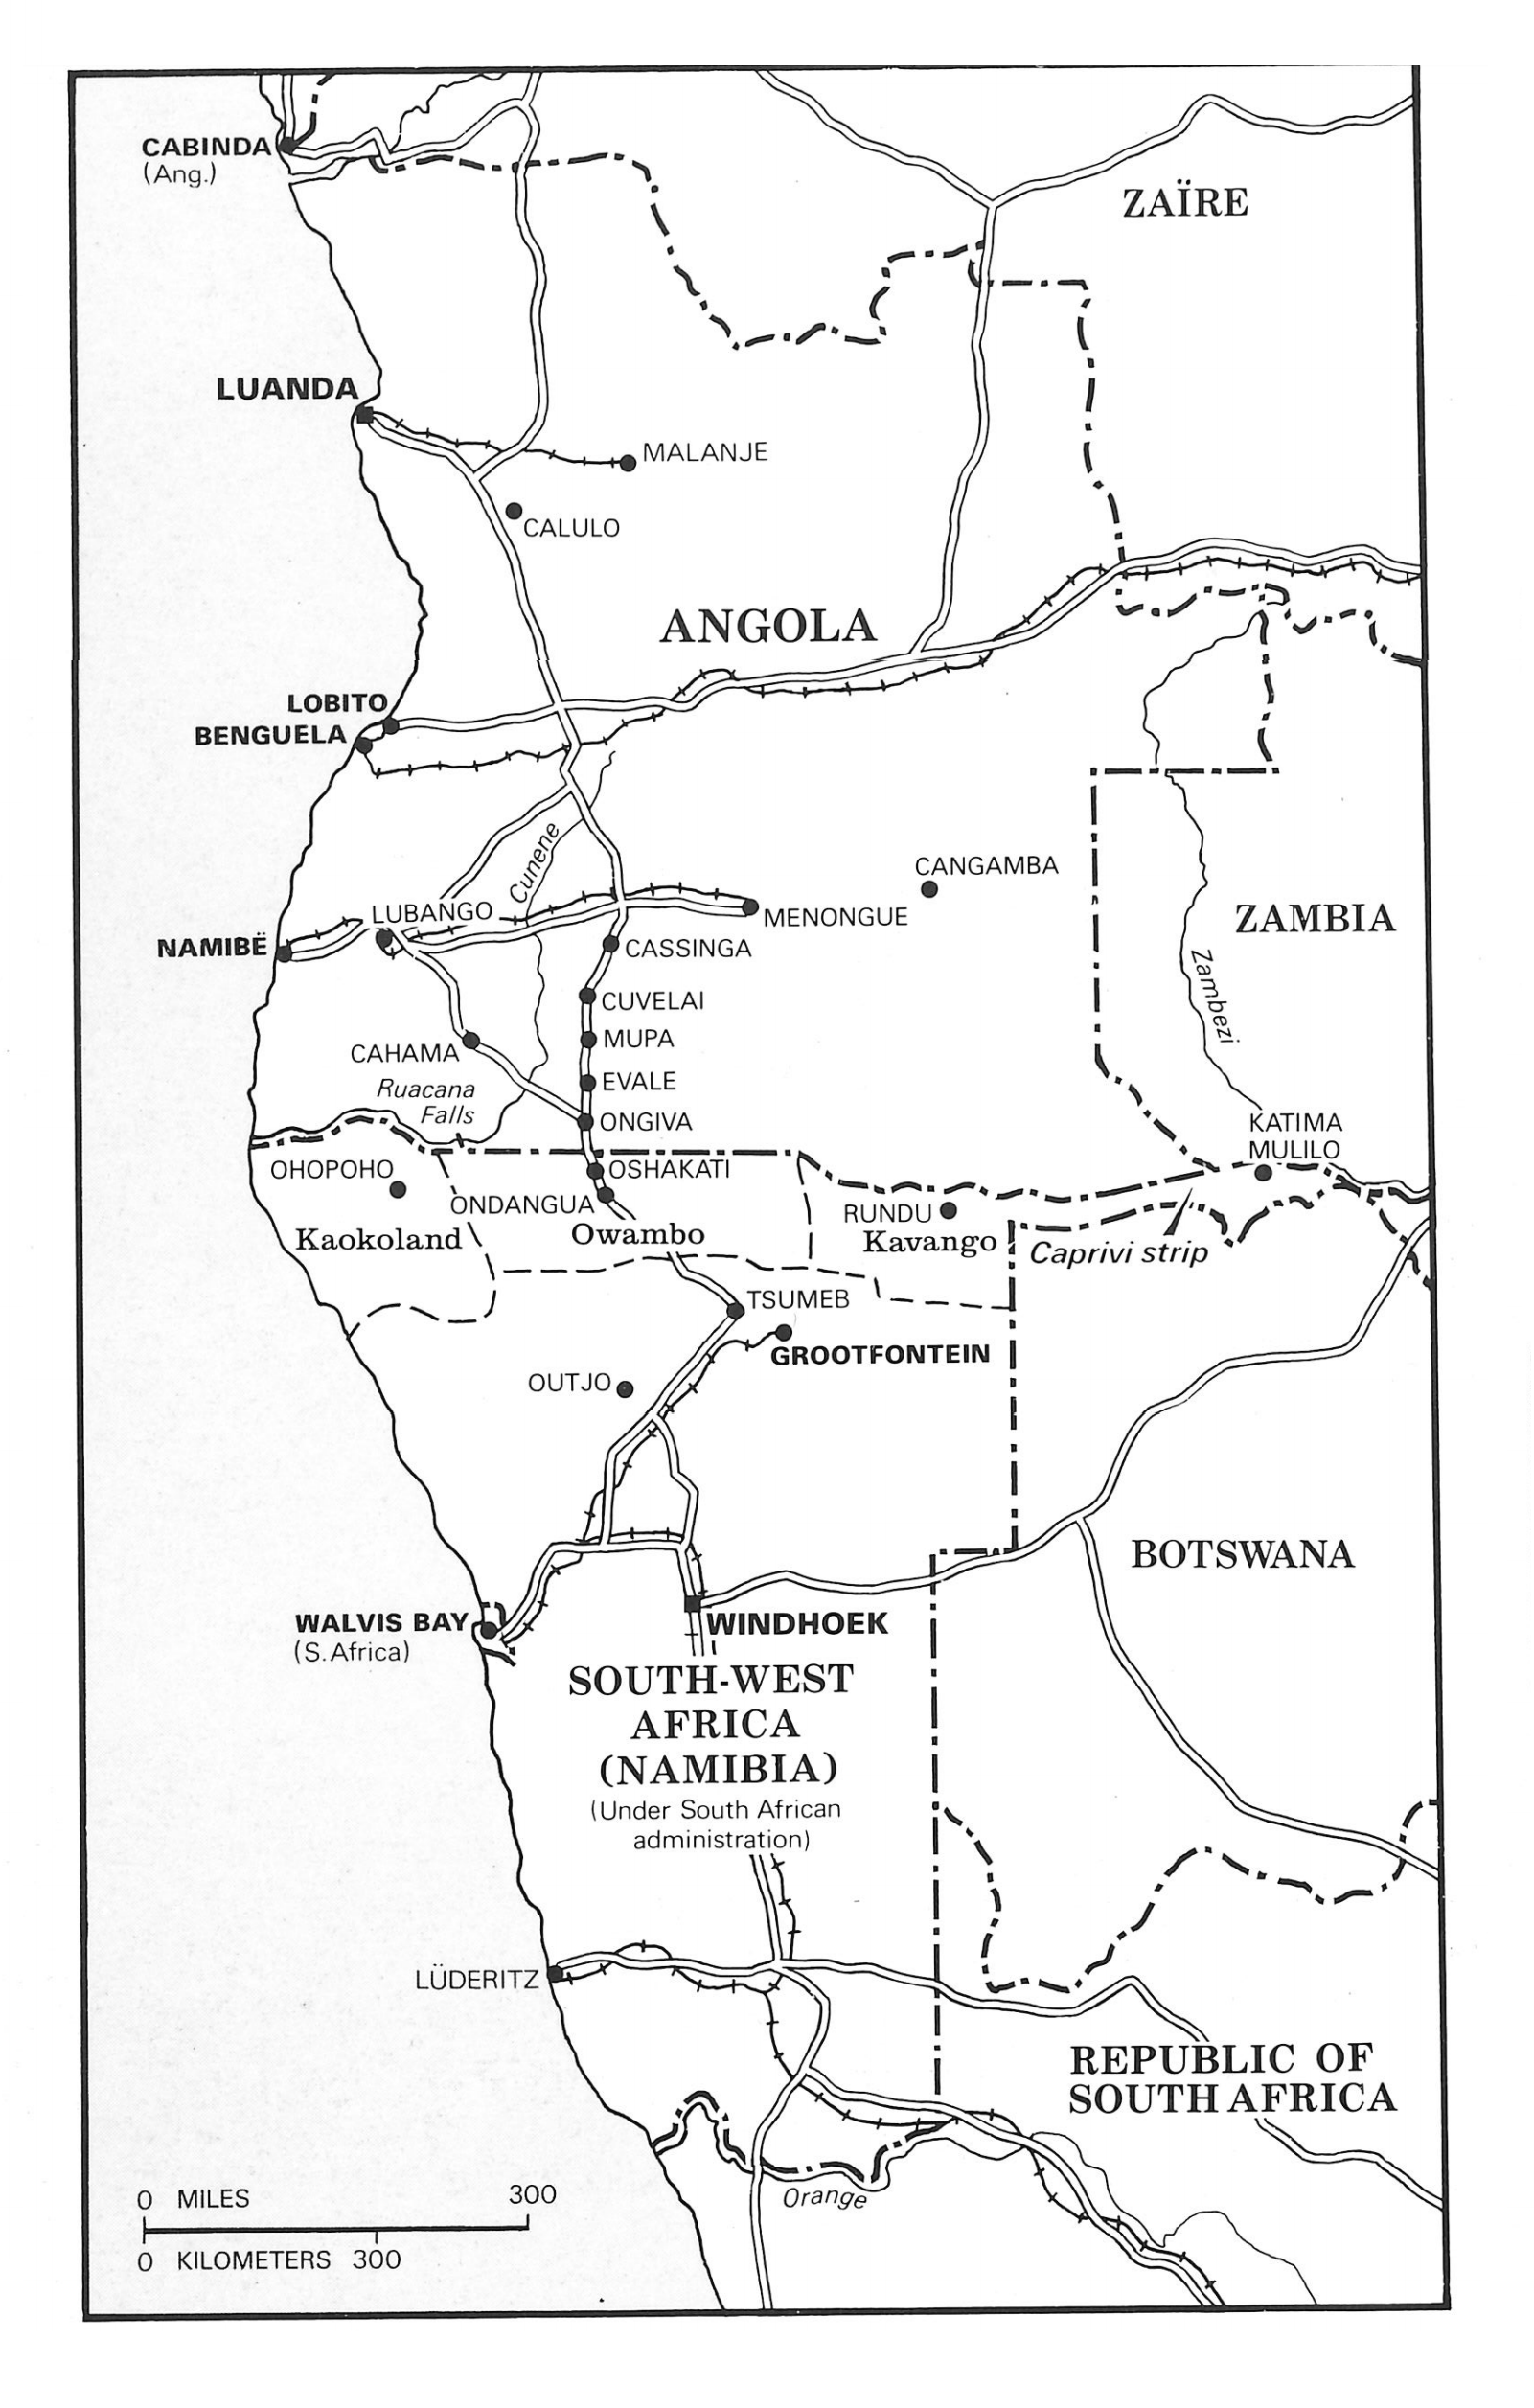 Angolan links and old maps